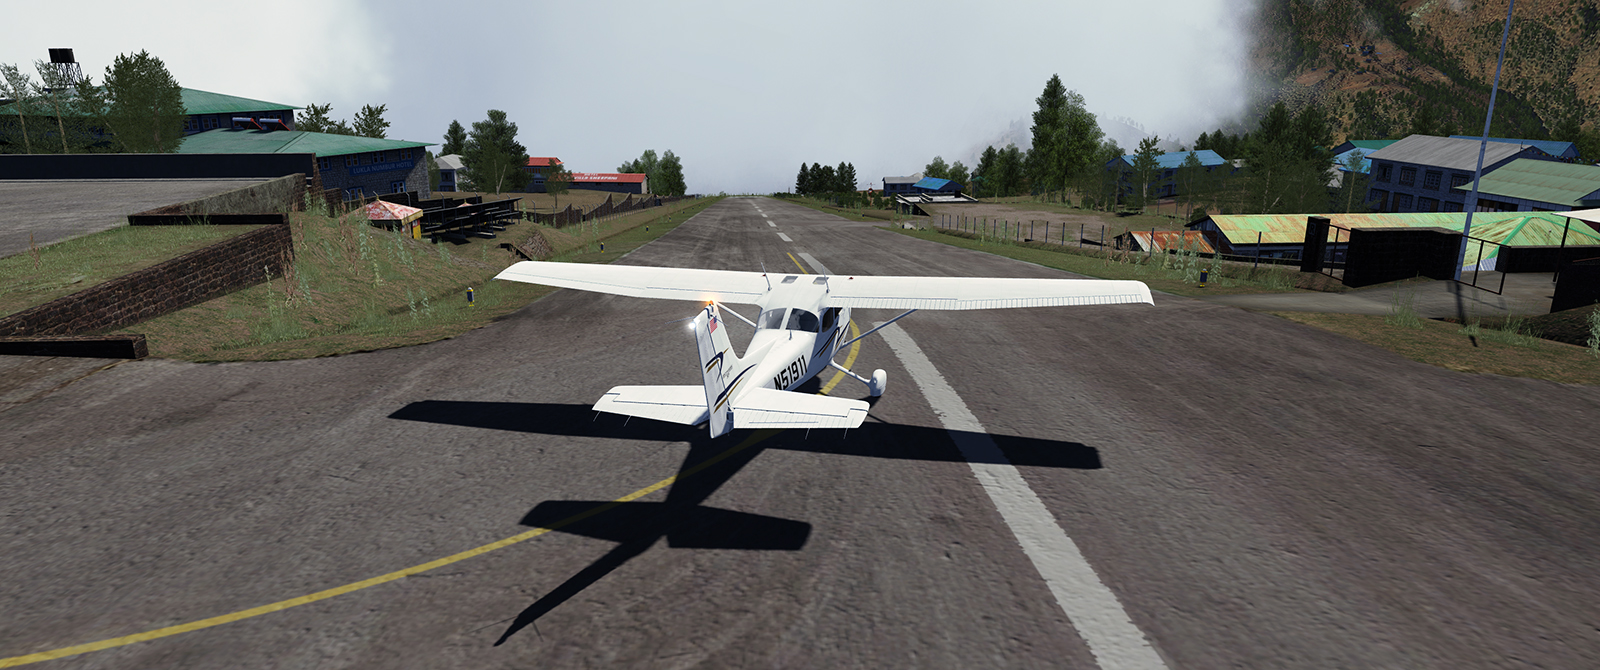 aerofly_fs_2_screenshot_14_20190614-0116